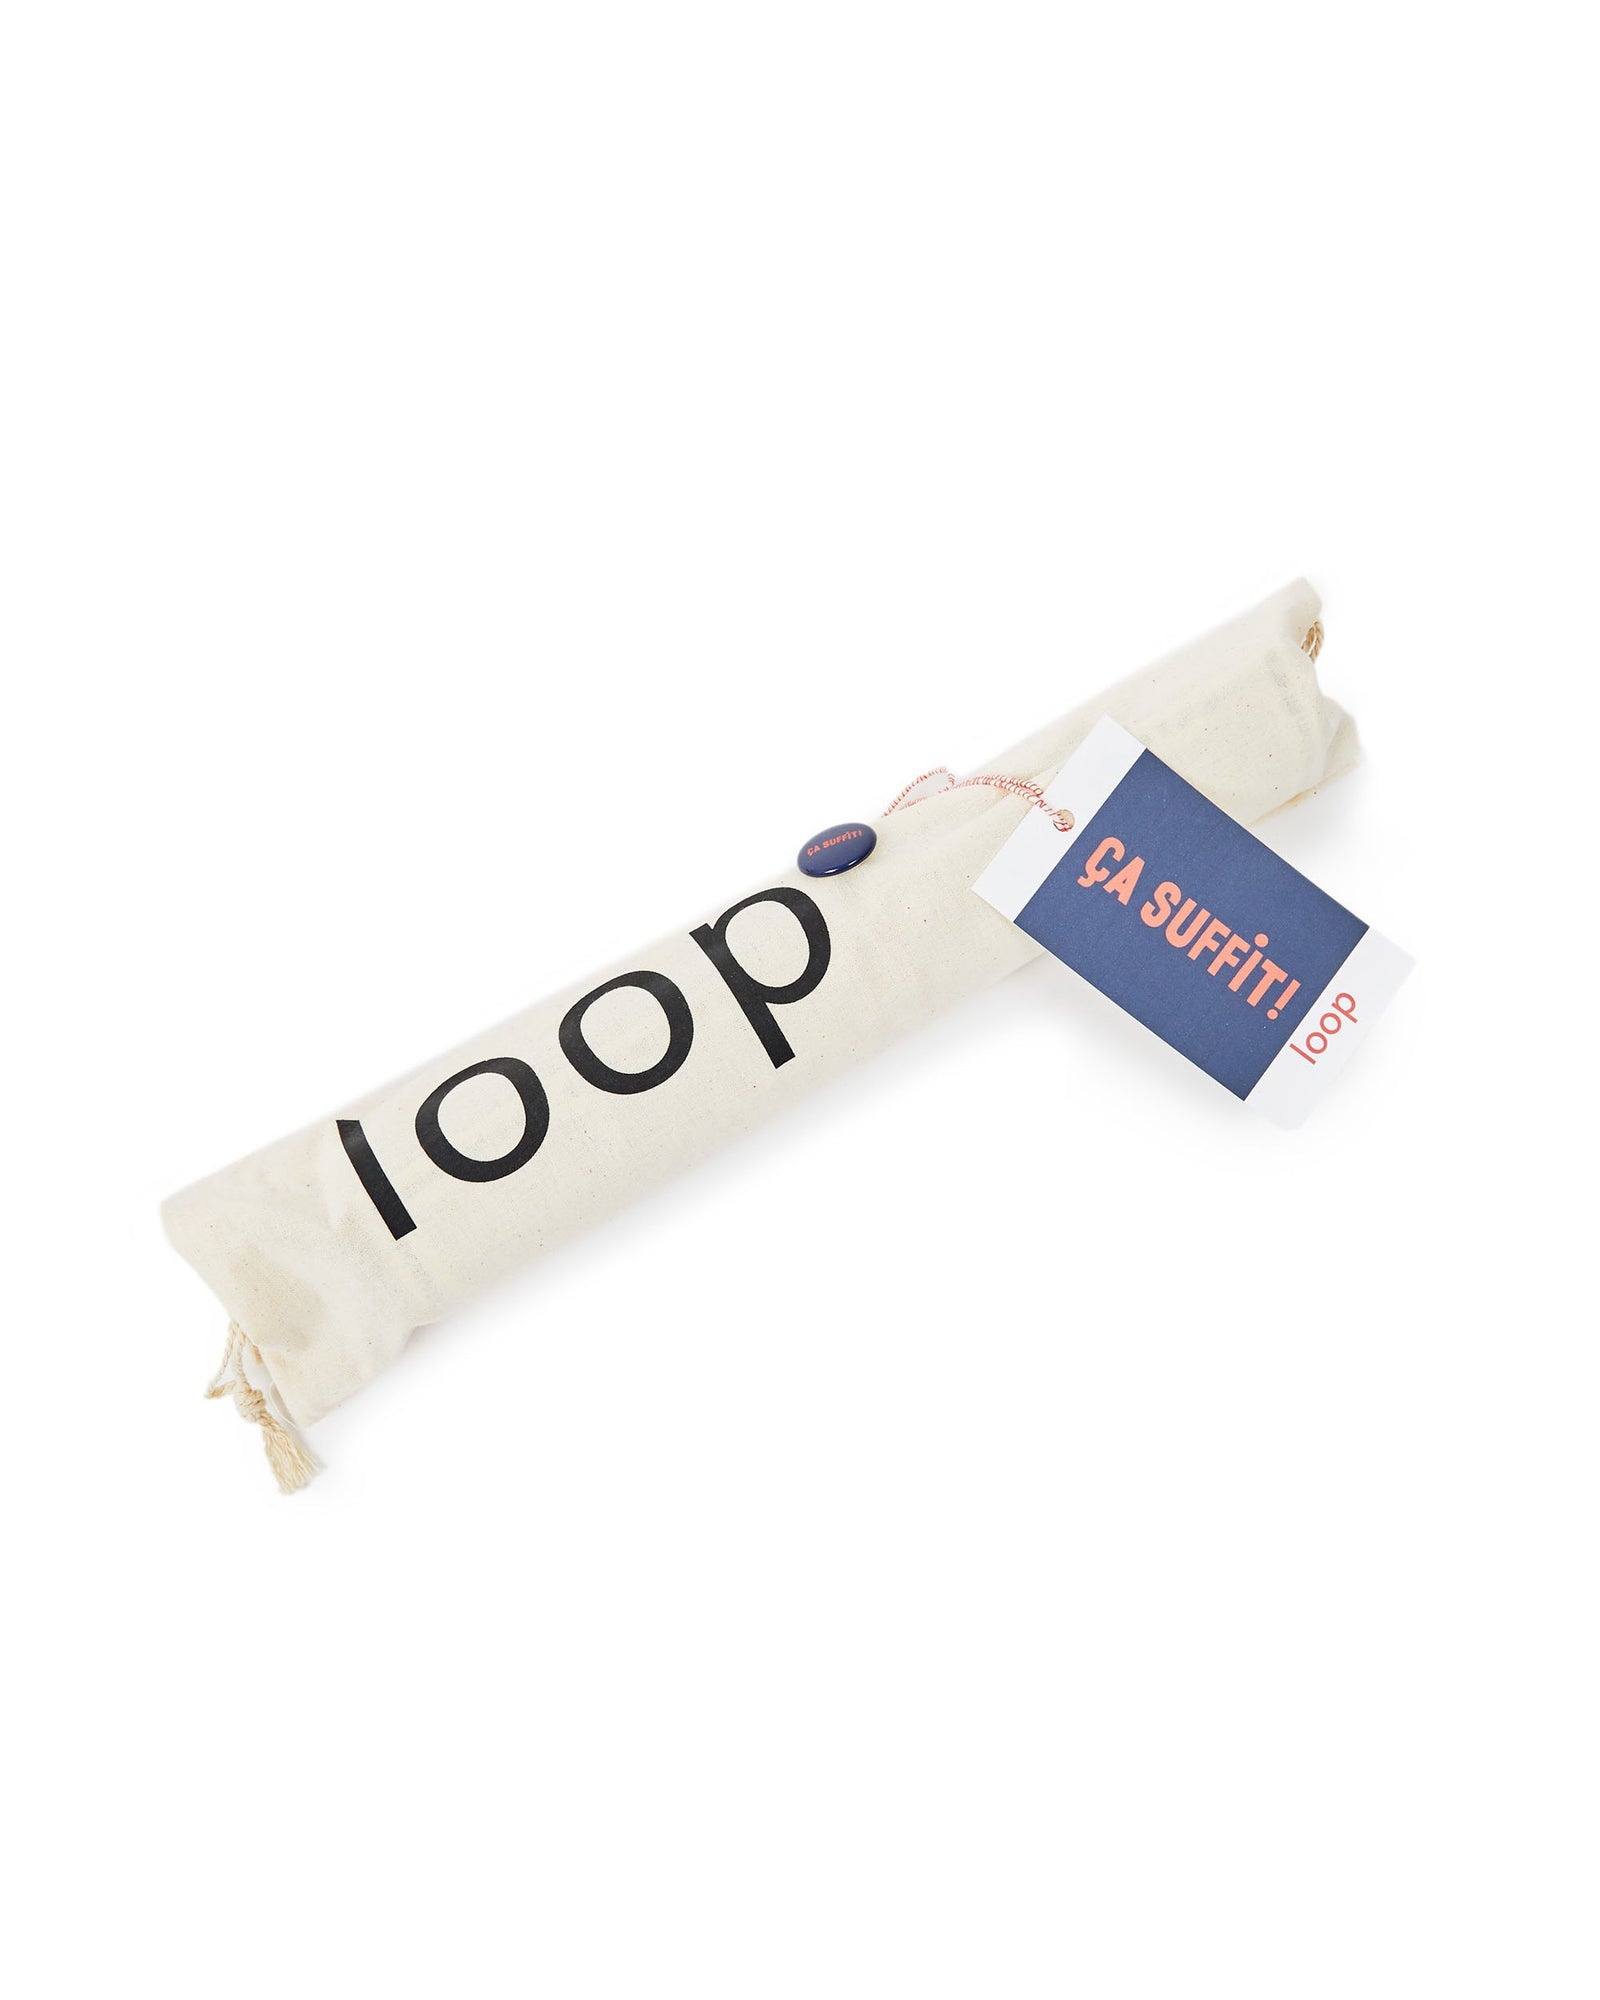 Ca Suffit Loop Canvas Needle Point Kit - Packaging